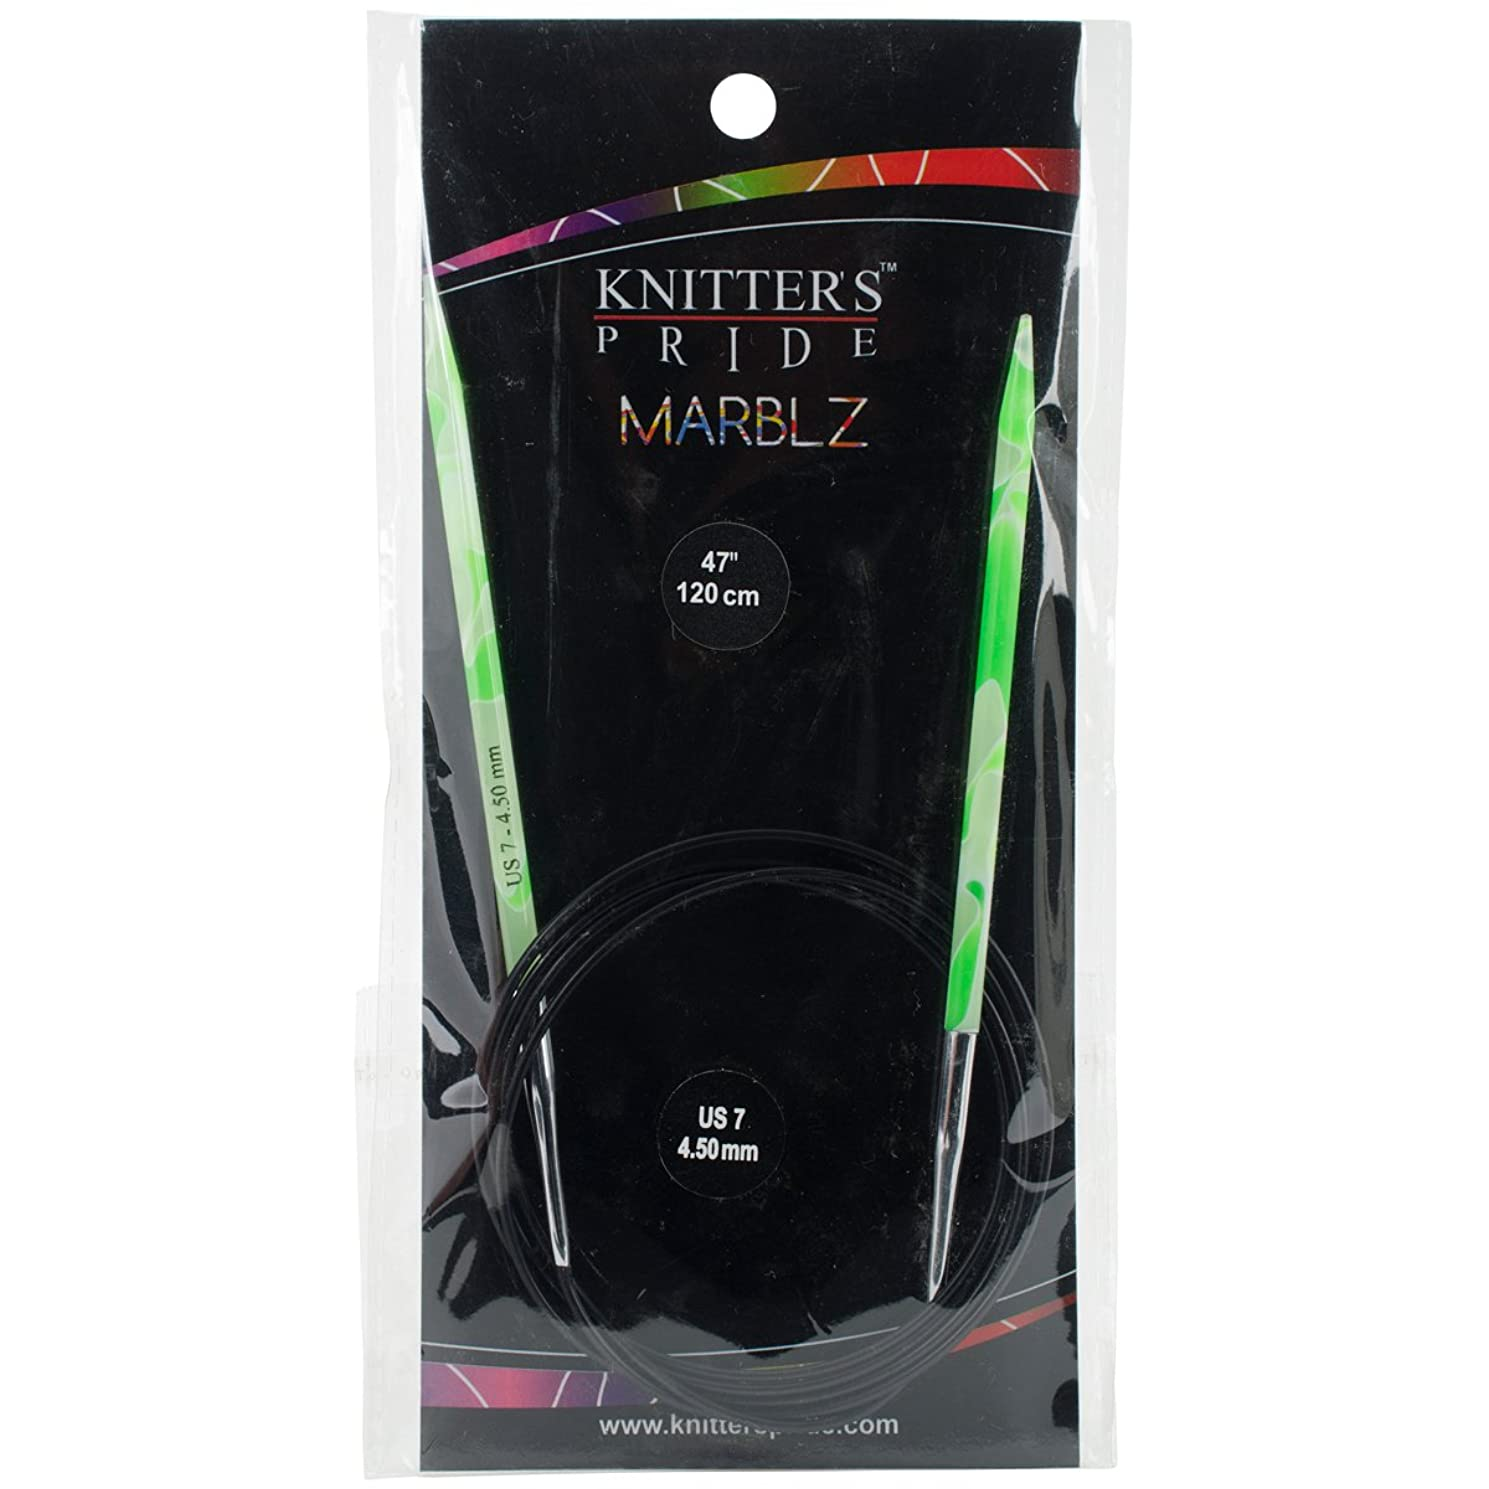 Knitter's Pride 7/4.5mm Marblz Fixed Circular Needles, 47